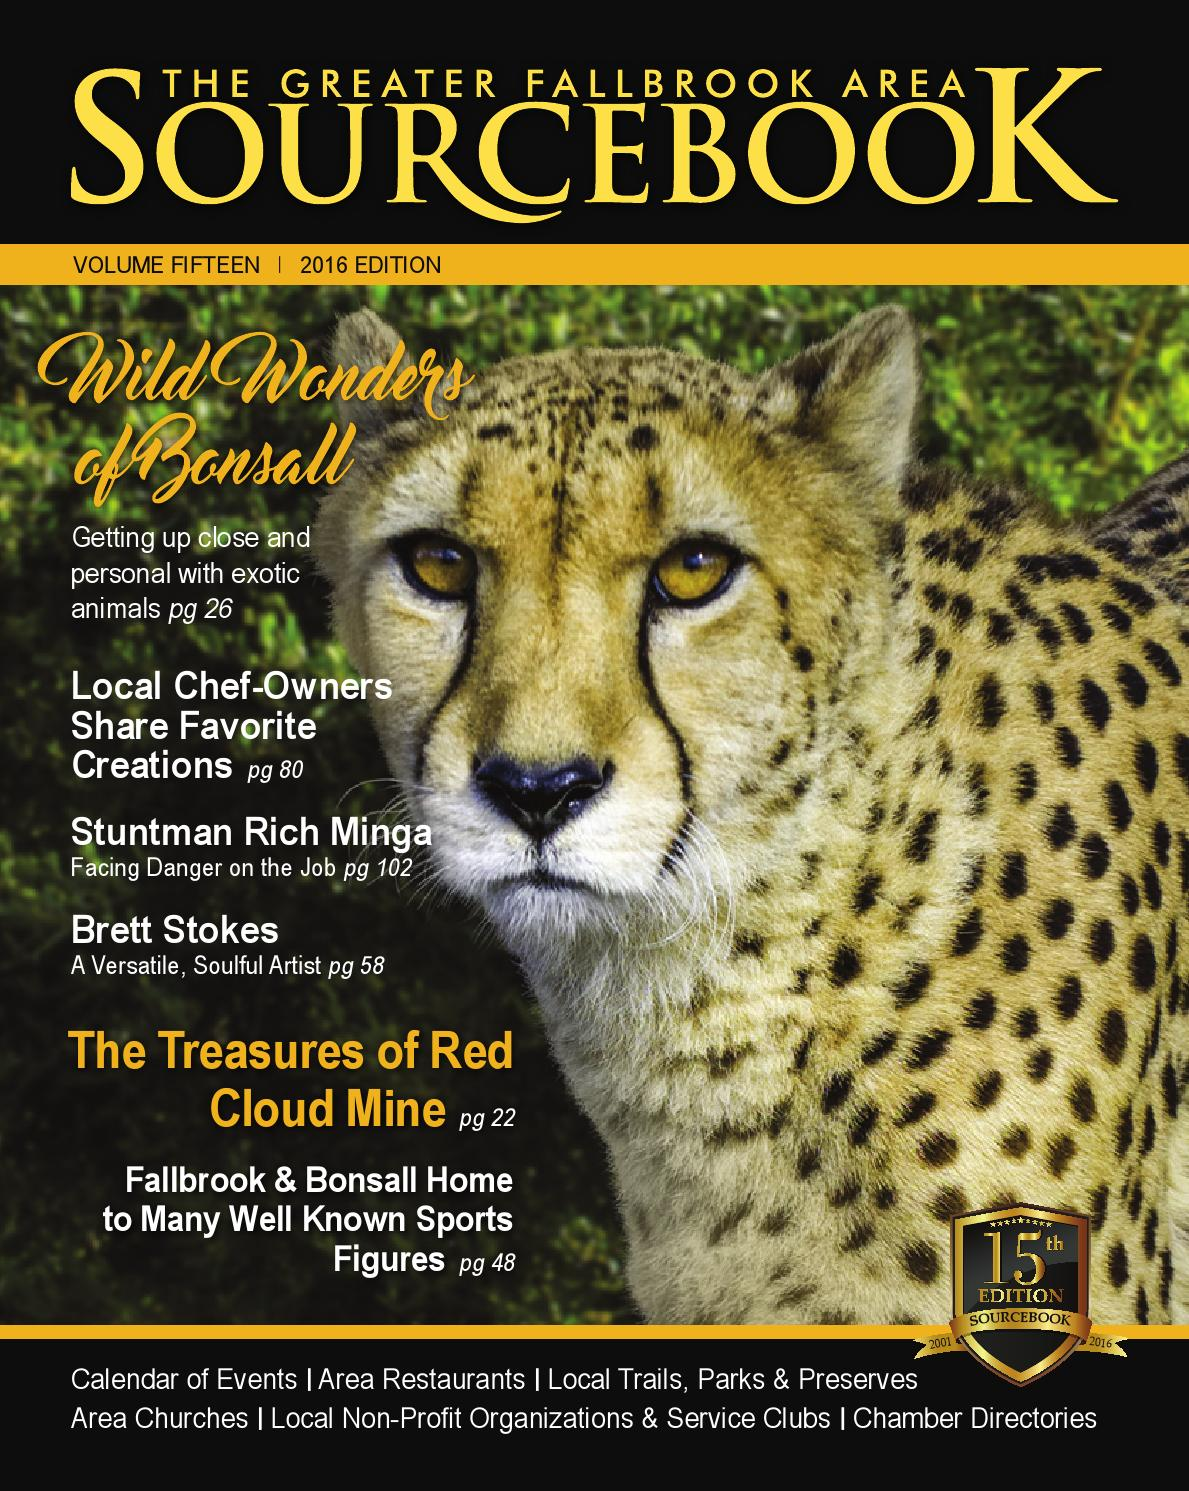 Fallbrook Sourcebook 2016 By Village News Inc